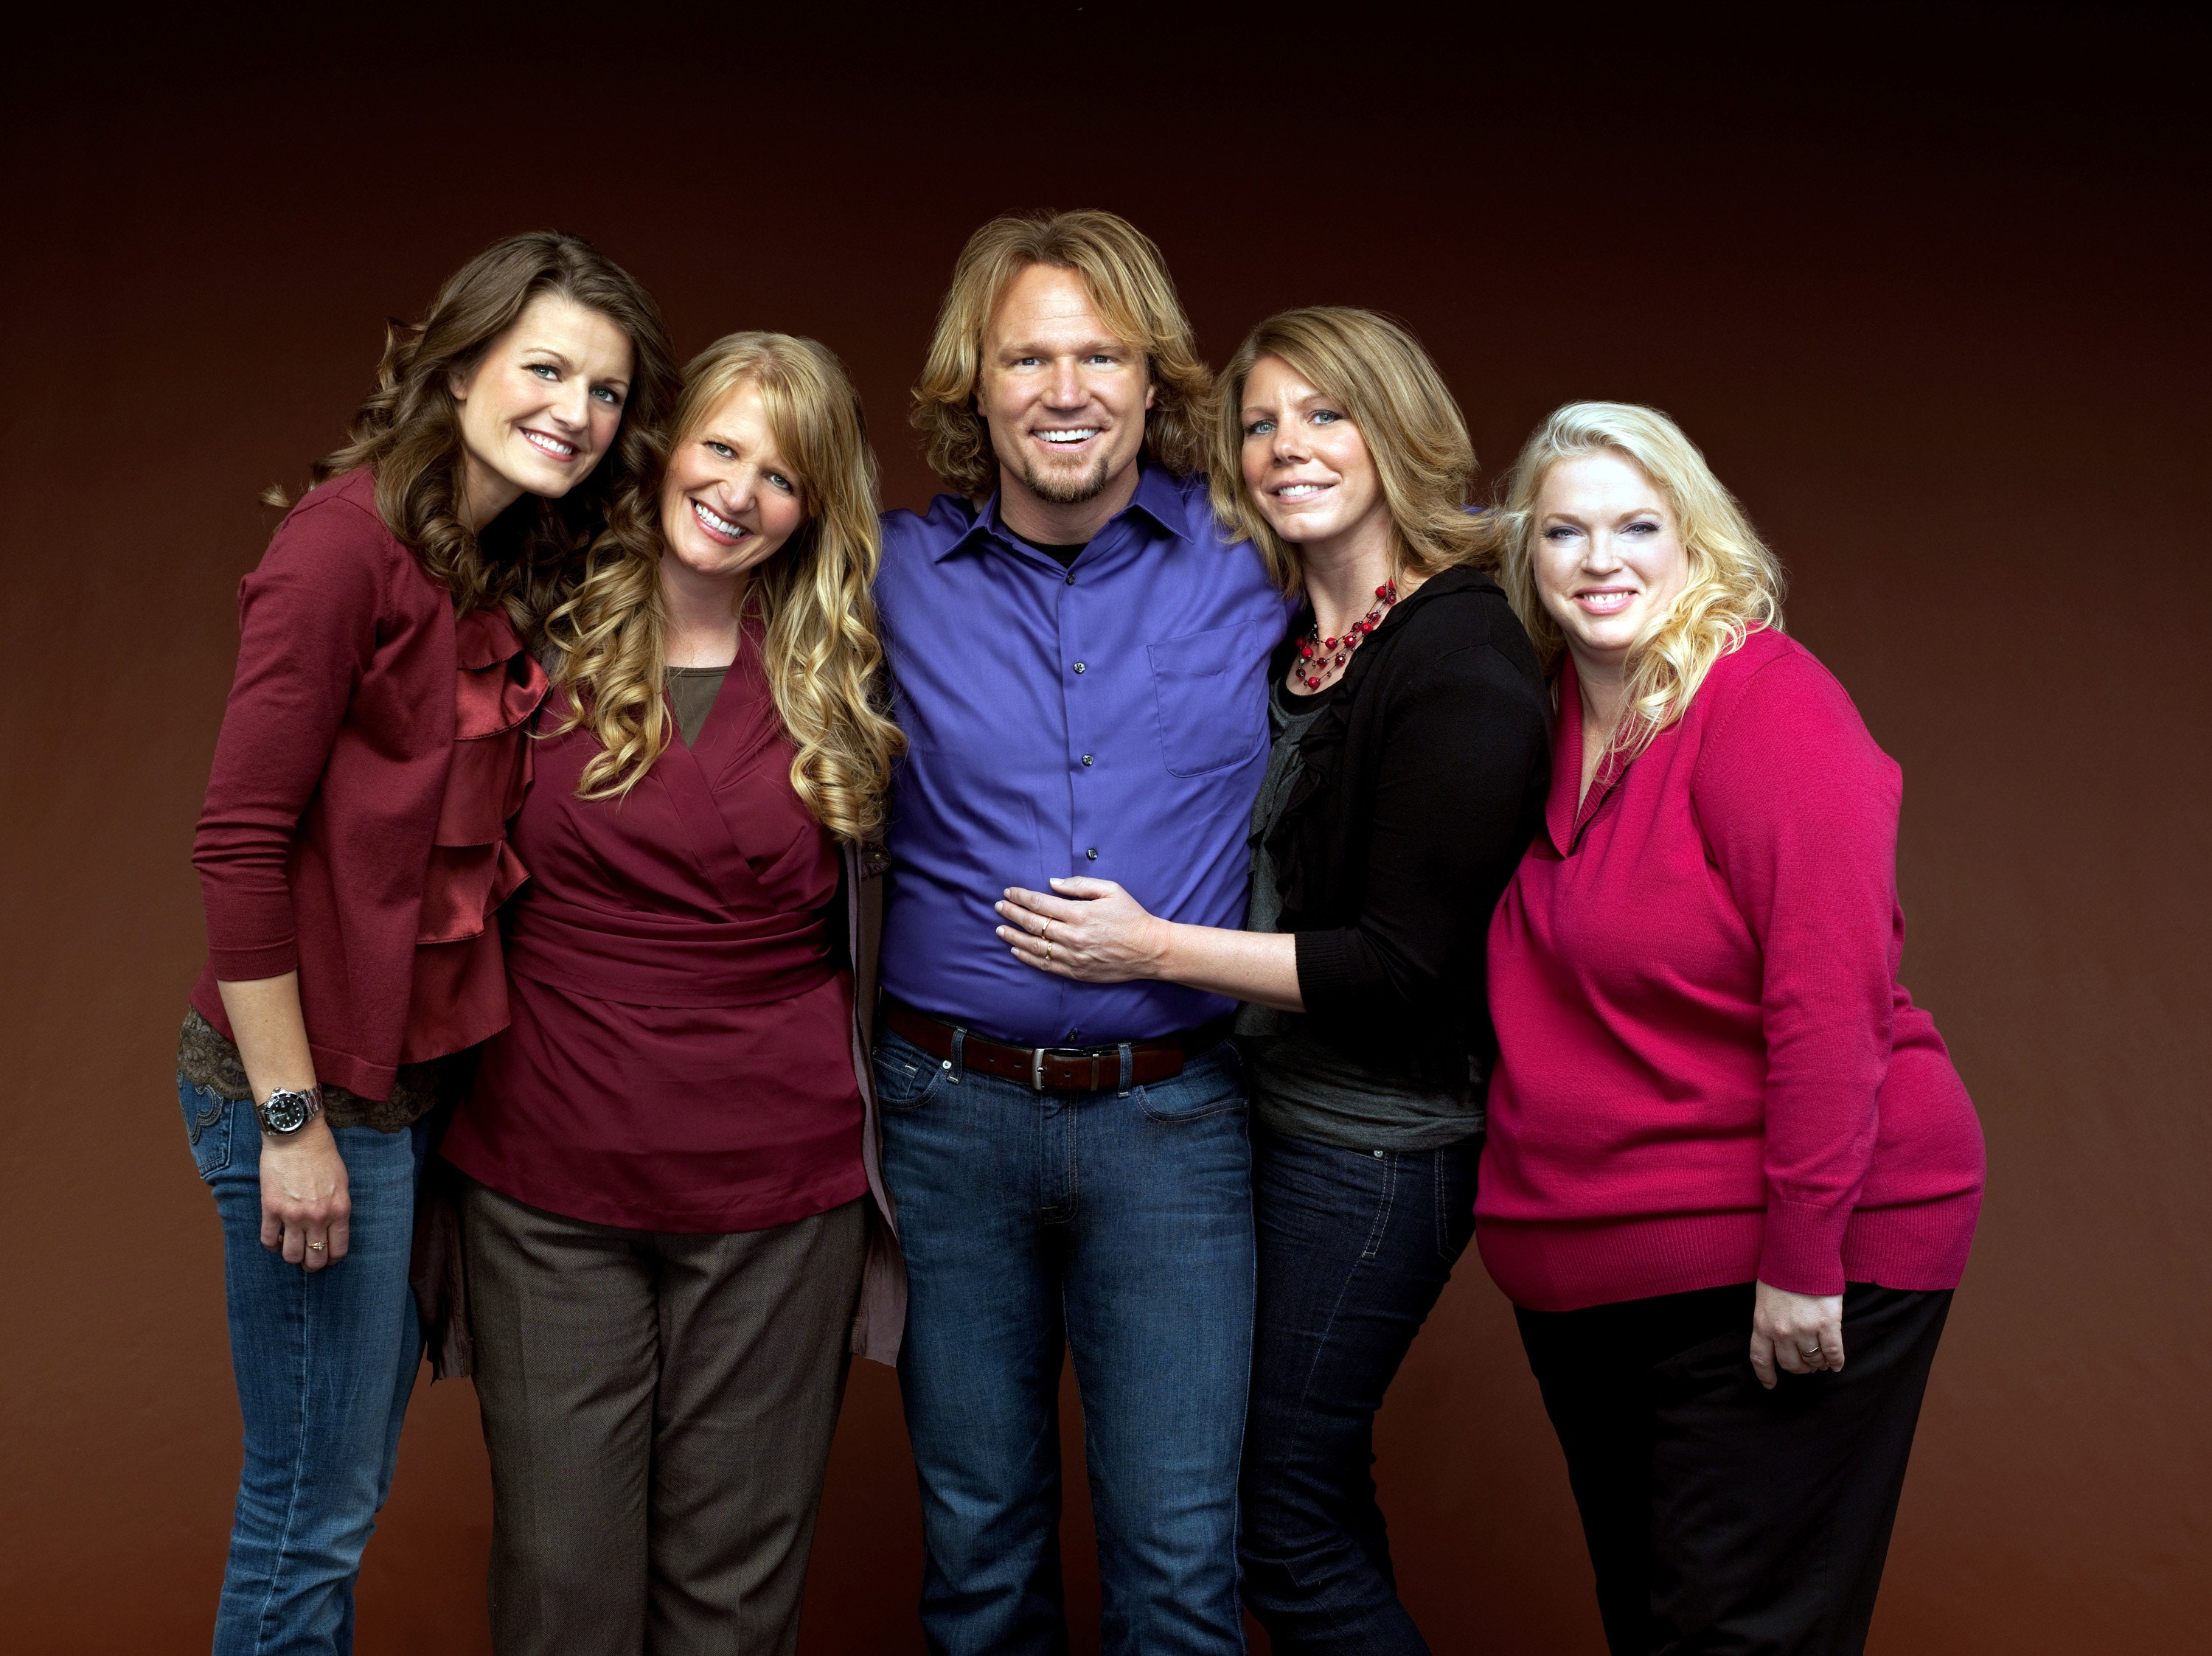 Stars Of Sister Wives Tv Show Humbled By Ruling Striking Down Utah Polygamy Law Fox News